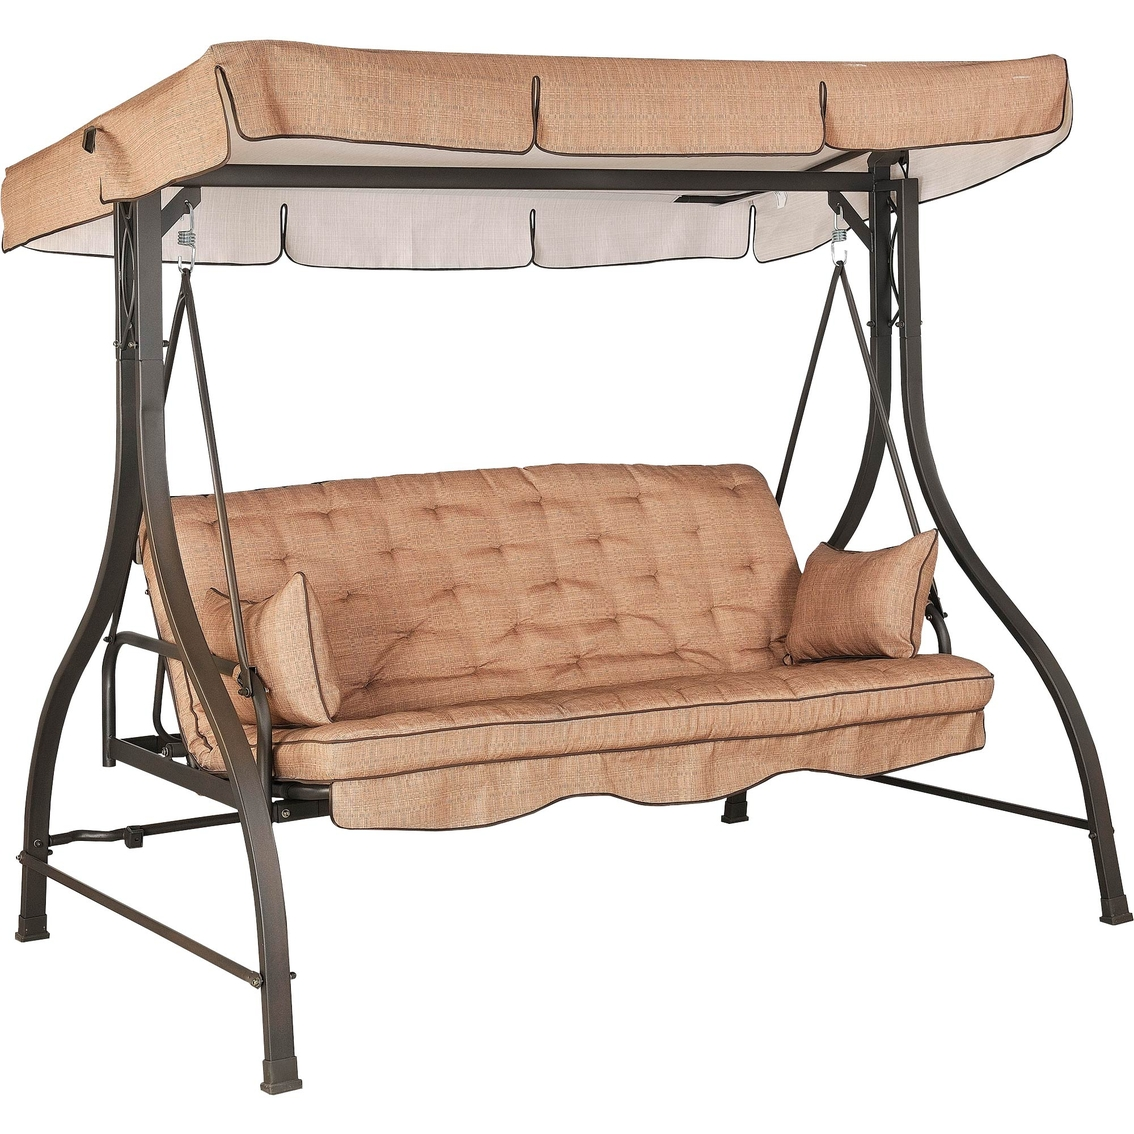 Courtyard Creations 3 Seater Hammock Swing | Hammocks ...